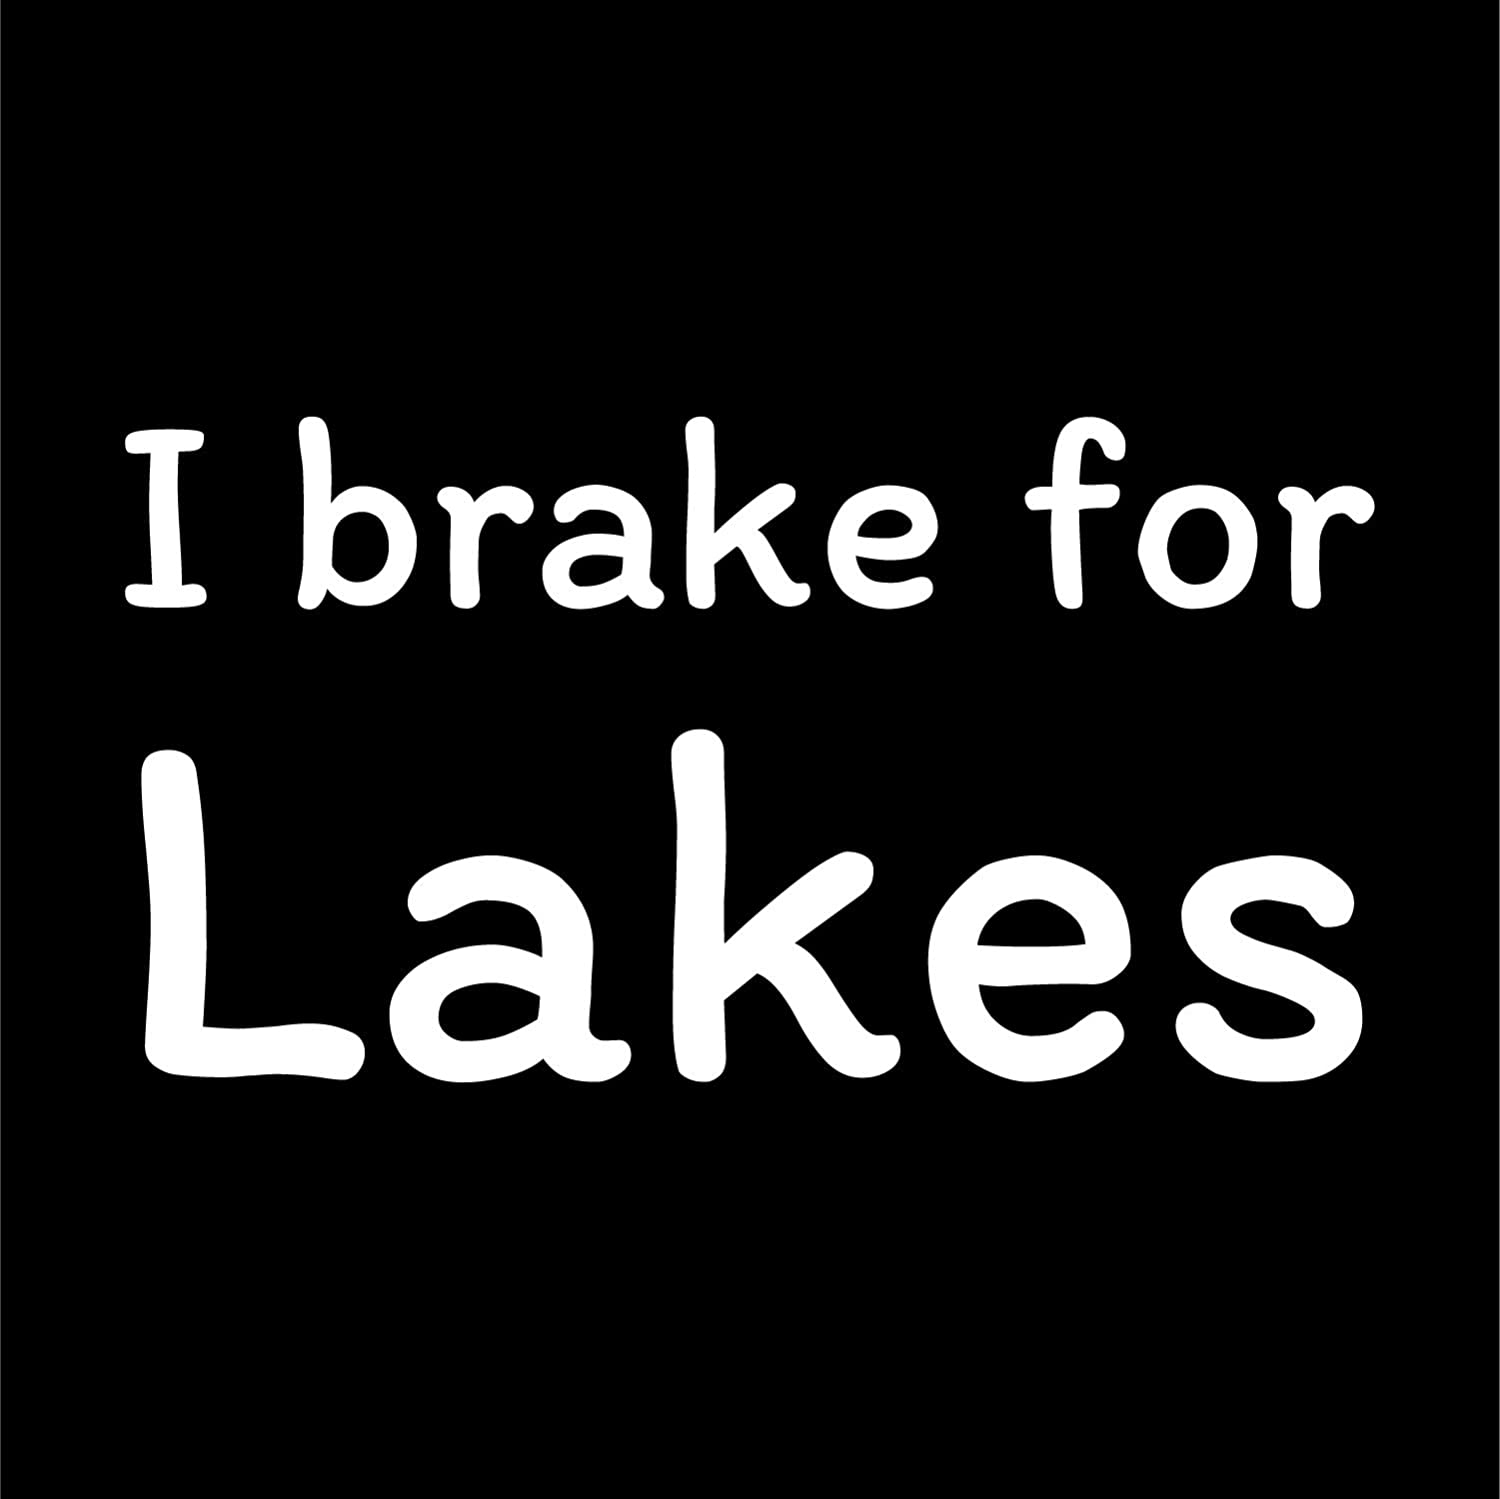 Car Truck Van SUV Window Wall Cup Laptop More Shiz I Brake for Lakes Vinyl Decal Sticker One 7 Inch Decal MKS0728